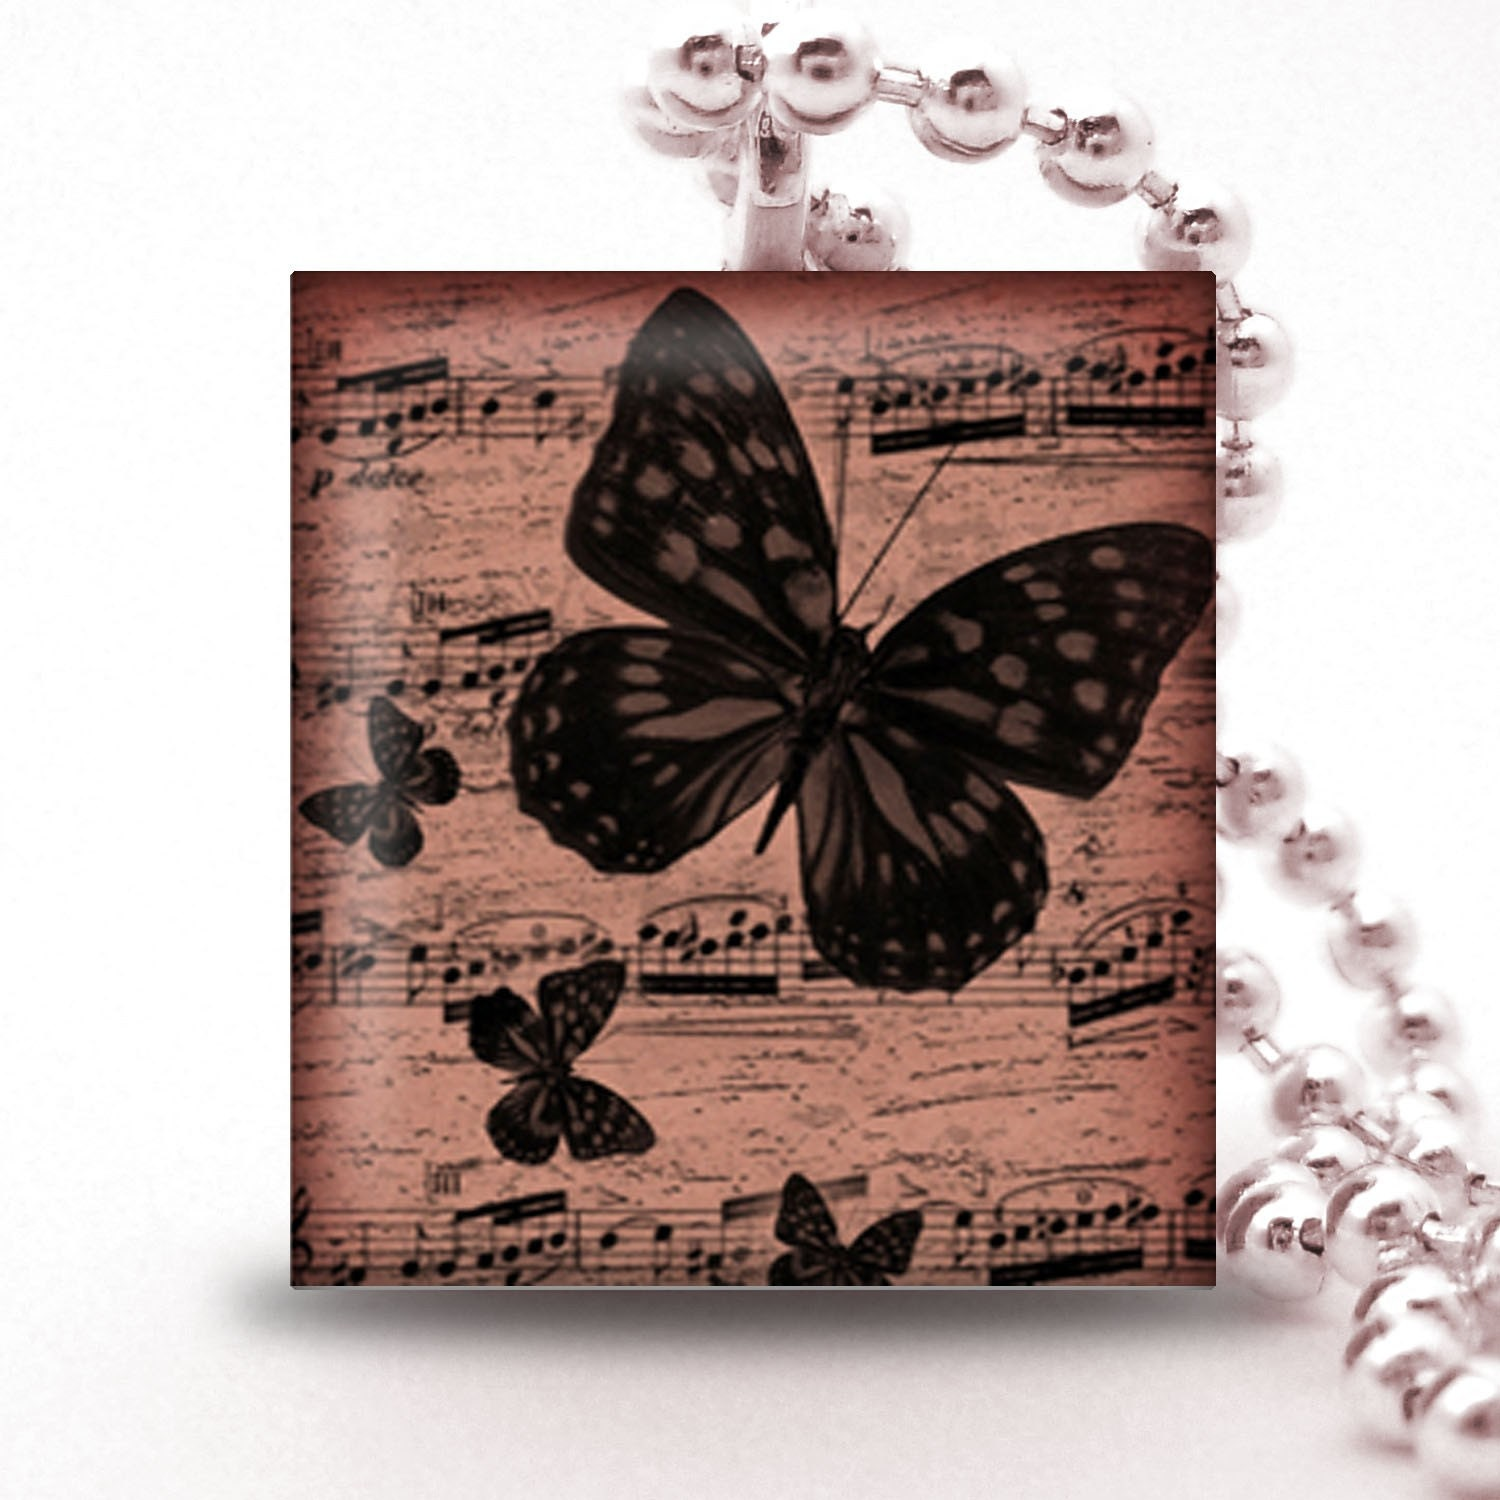 Scrabble Tile Pendant - MUSIC COLLECTION 012 - Buy 2 Pendants Get 1 Free